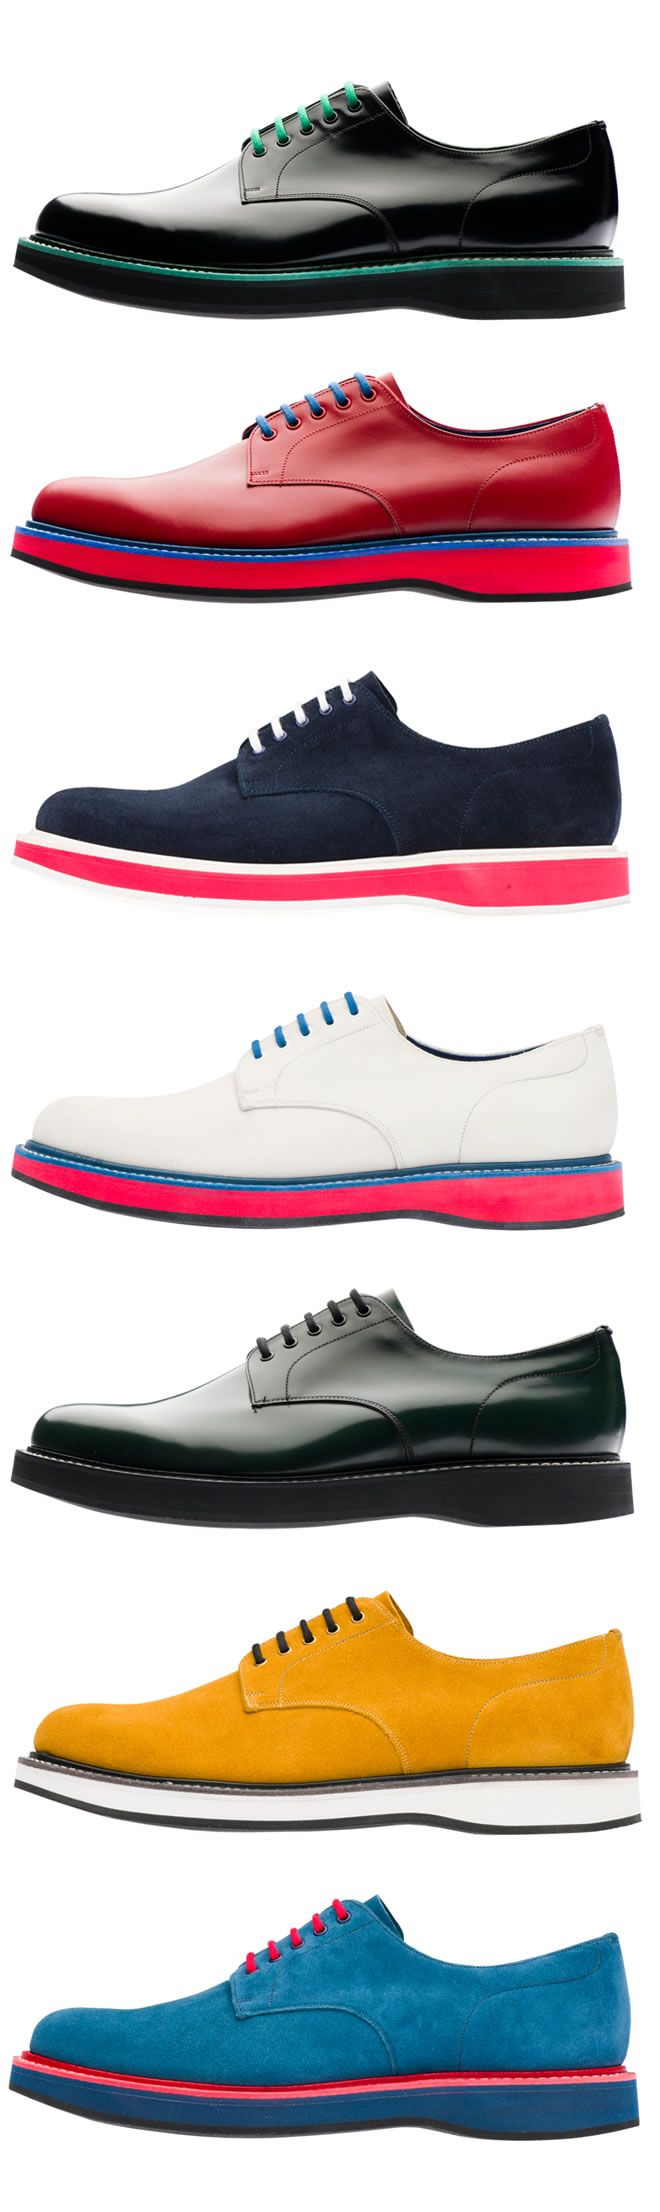 Church's - Limited Edition Stratford Shoe